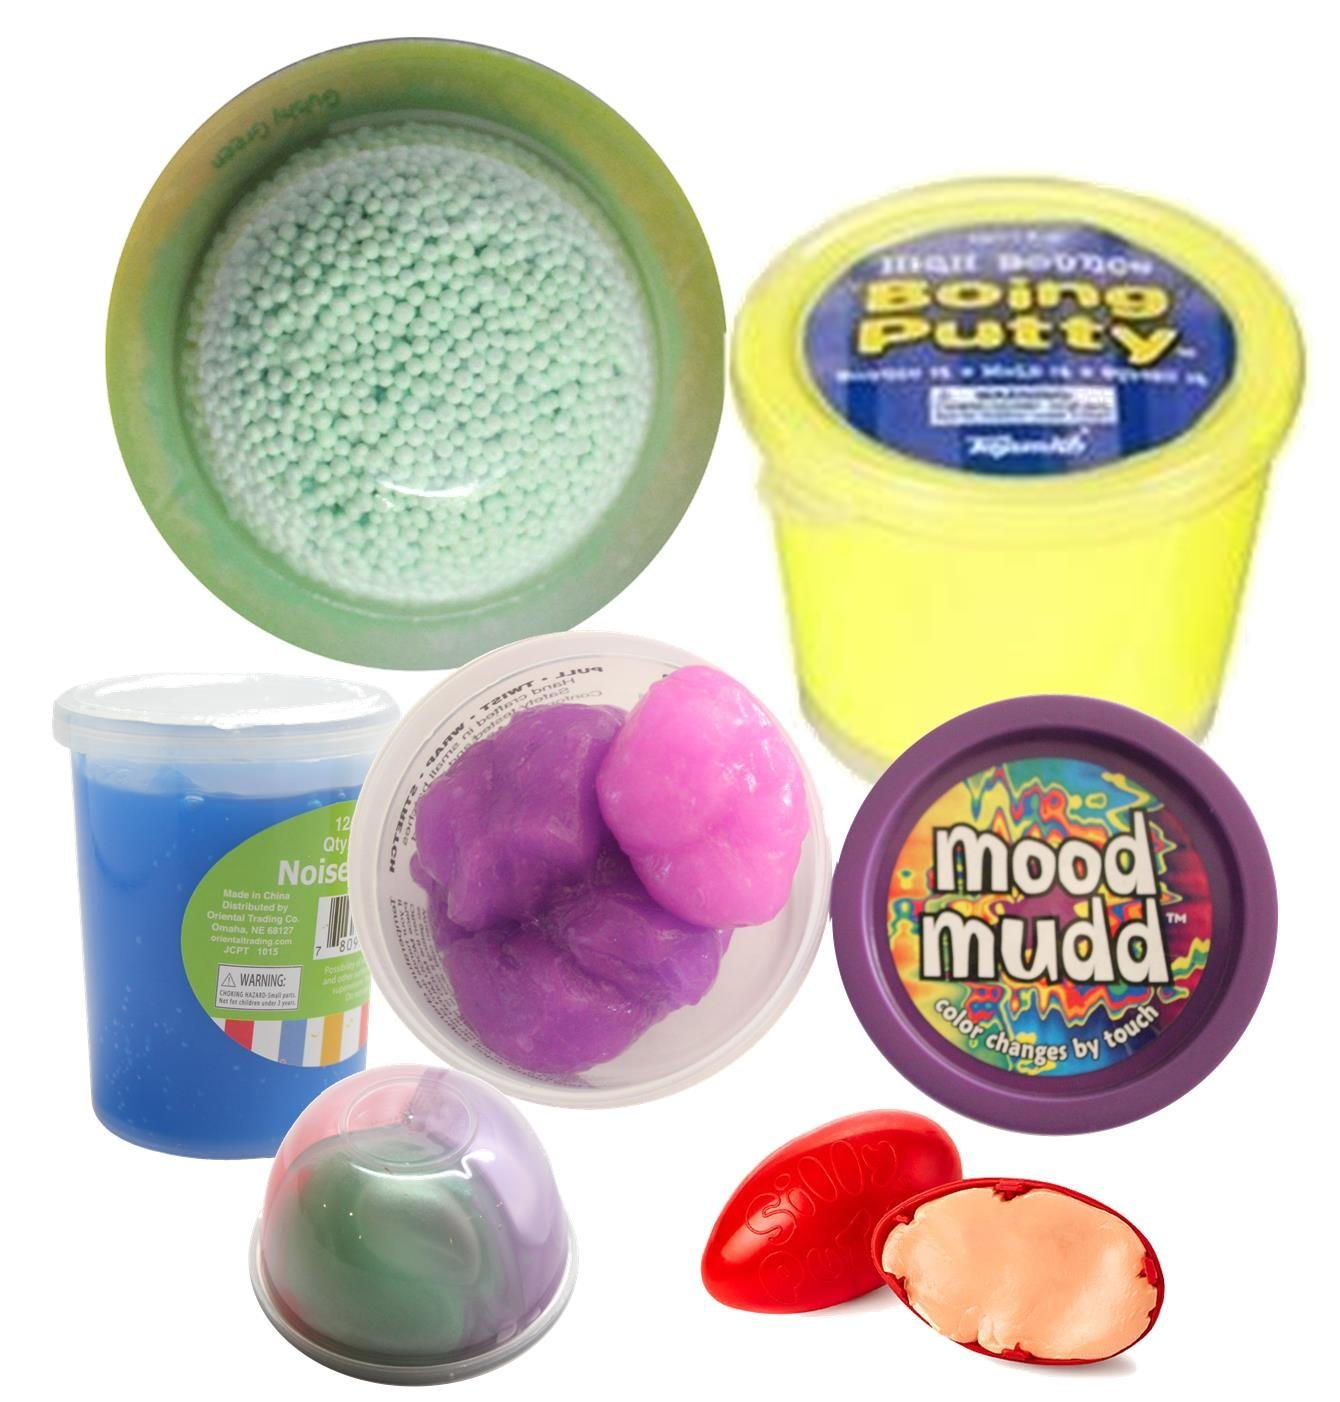 Kids Slime And Putty Toy Sampler Bundle - Tactile And Sensory Toys For Children 18